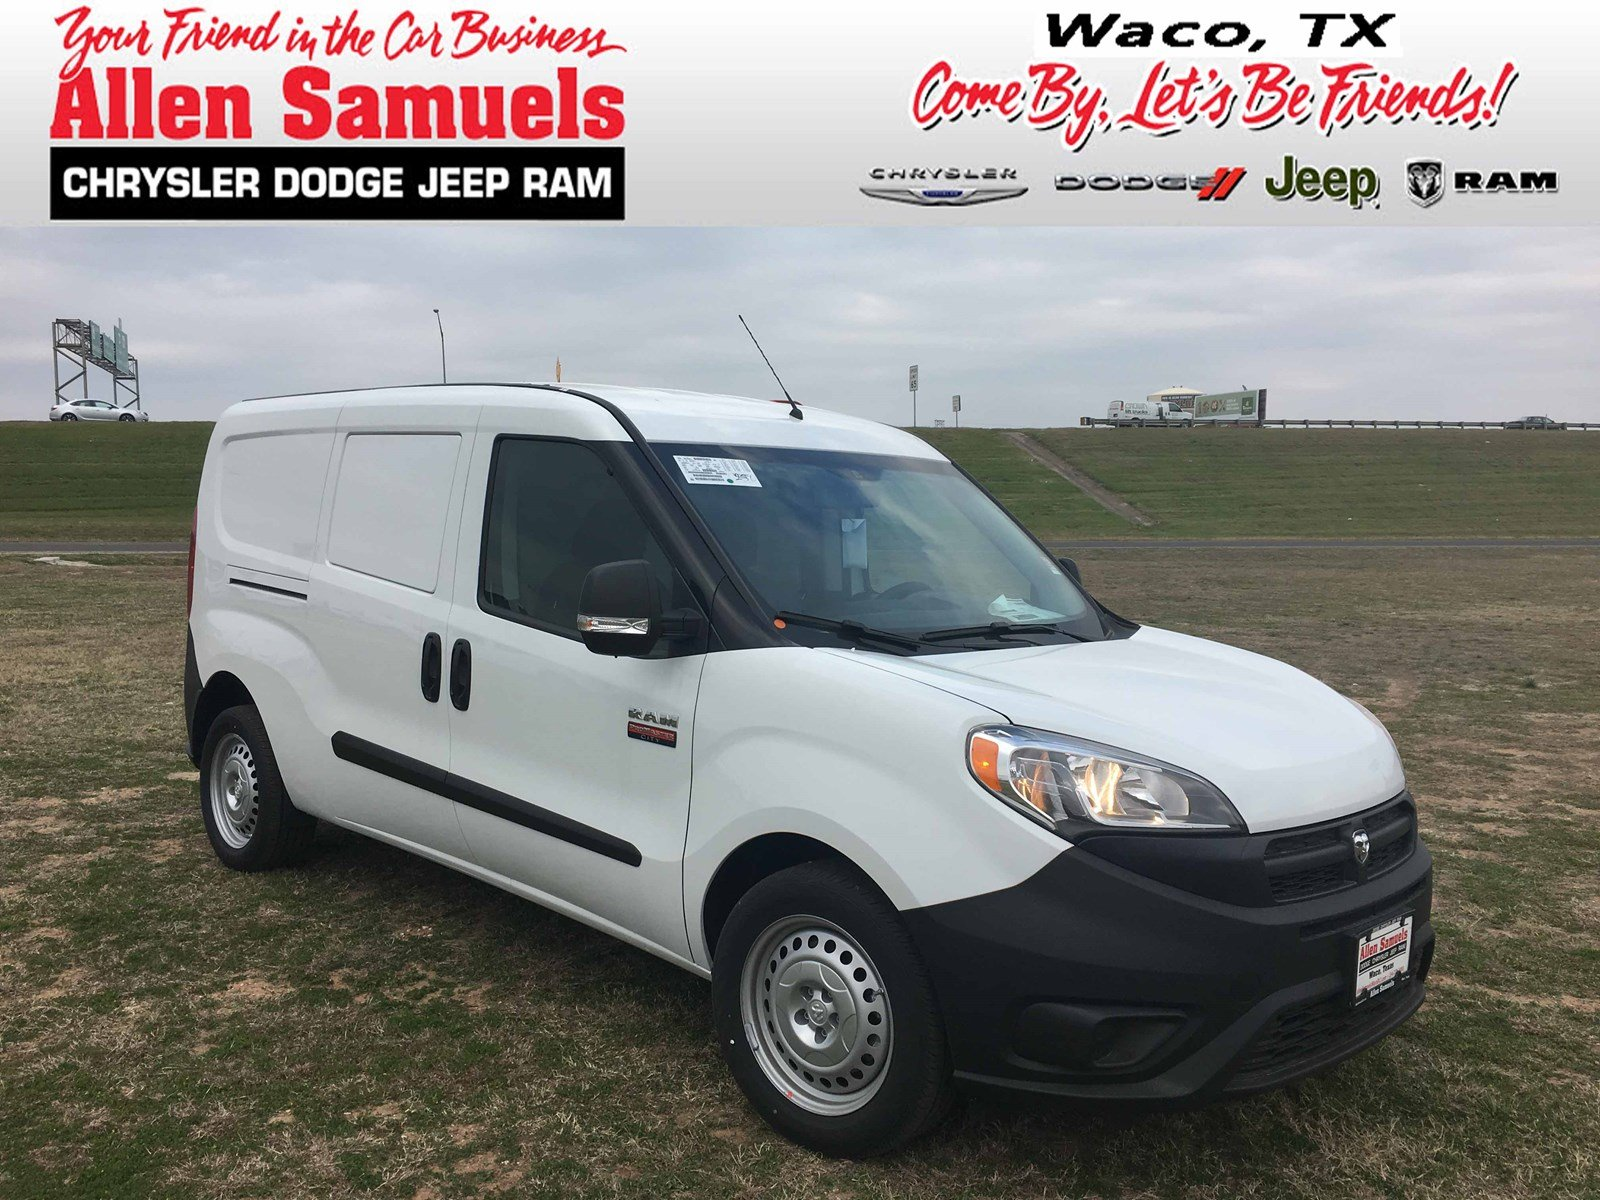 new 2017 ram promaster city wagon cargo van in waco 17t70002 allen samuels dodge chrysler. Black Bedroom Furniture Sets. Home Design Ideas